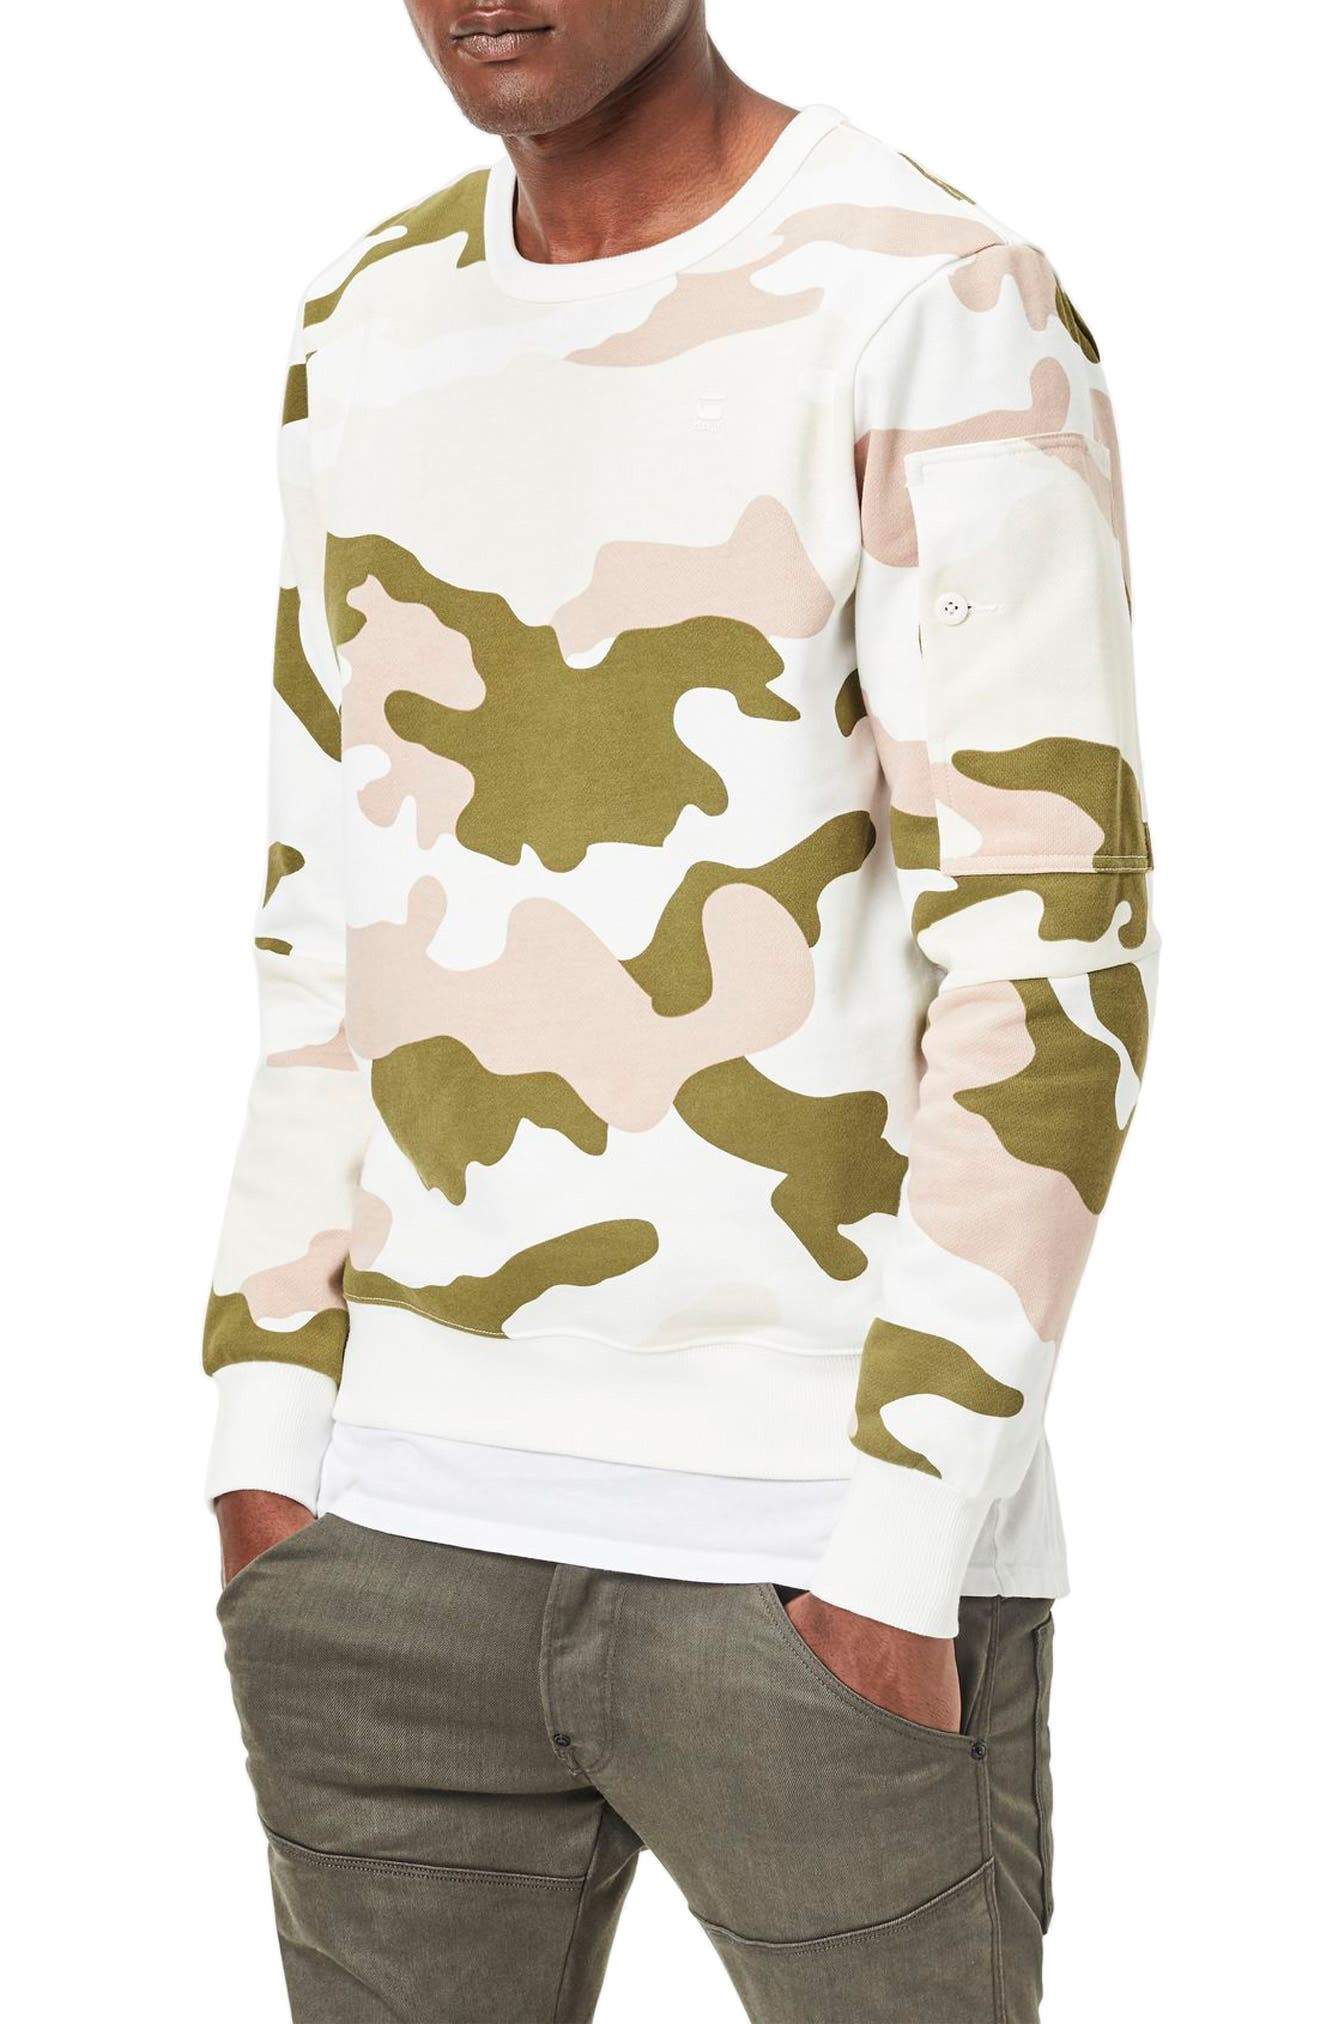 Alternate Image 1 Selected - G-Star Raw Stalt Camo Sweatshirt